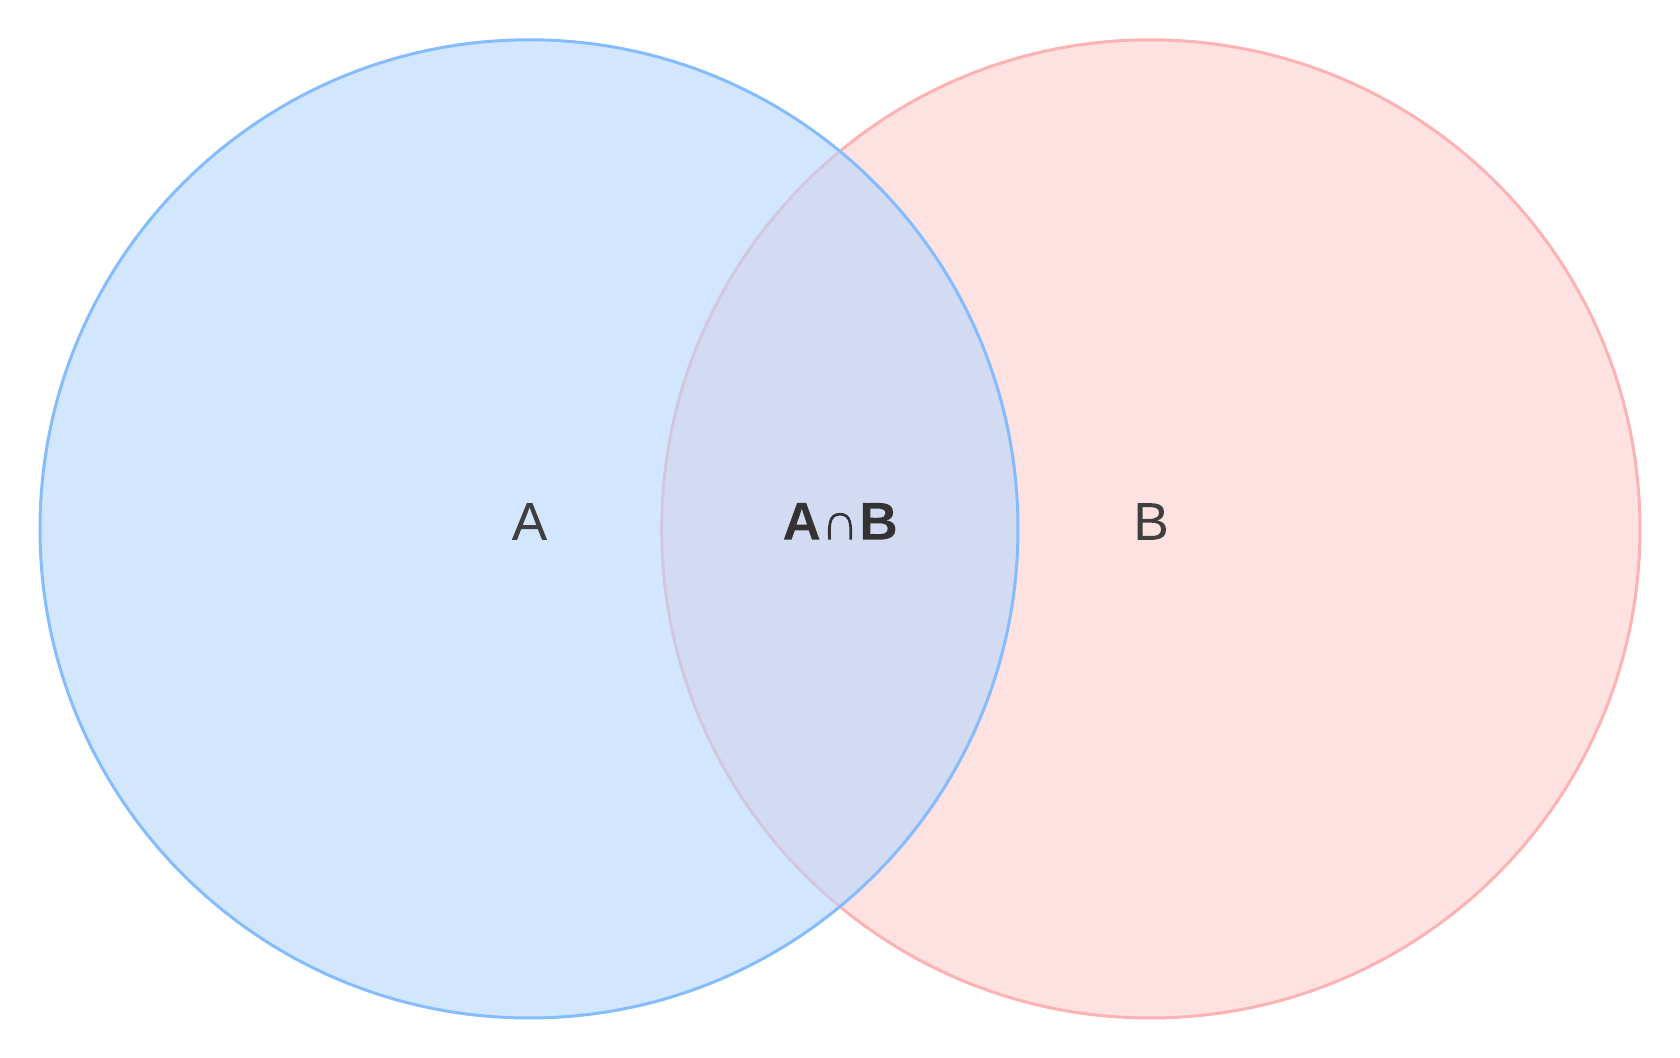 Venn diagram intersection of two sets